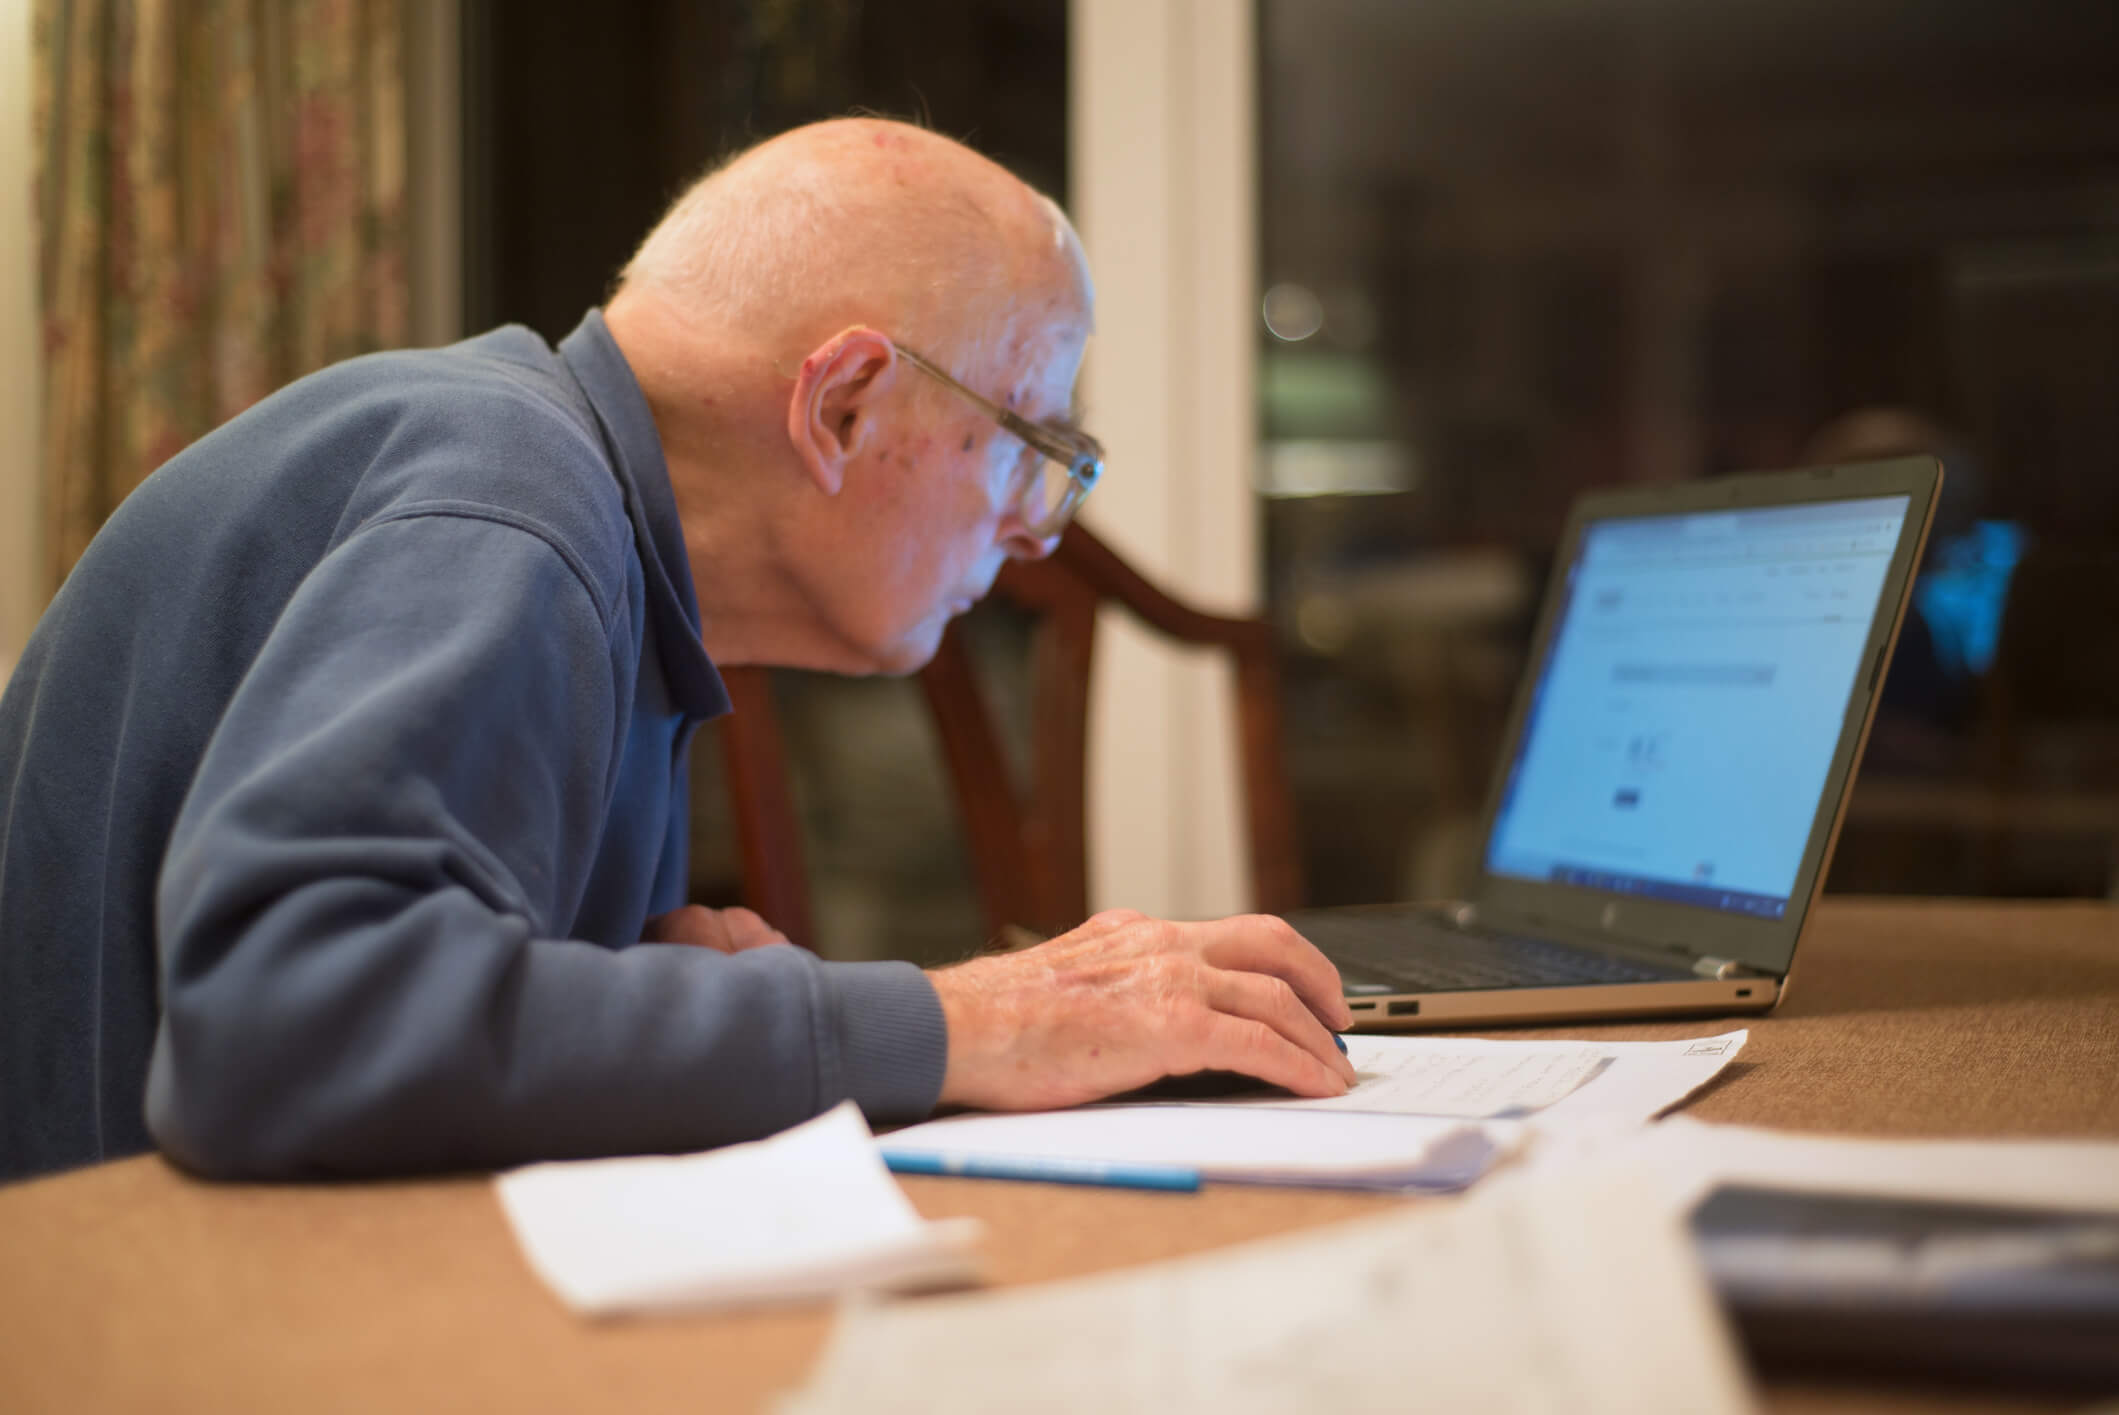 Using Internet in Retirement Boosts Cognitive Function — New Research